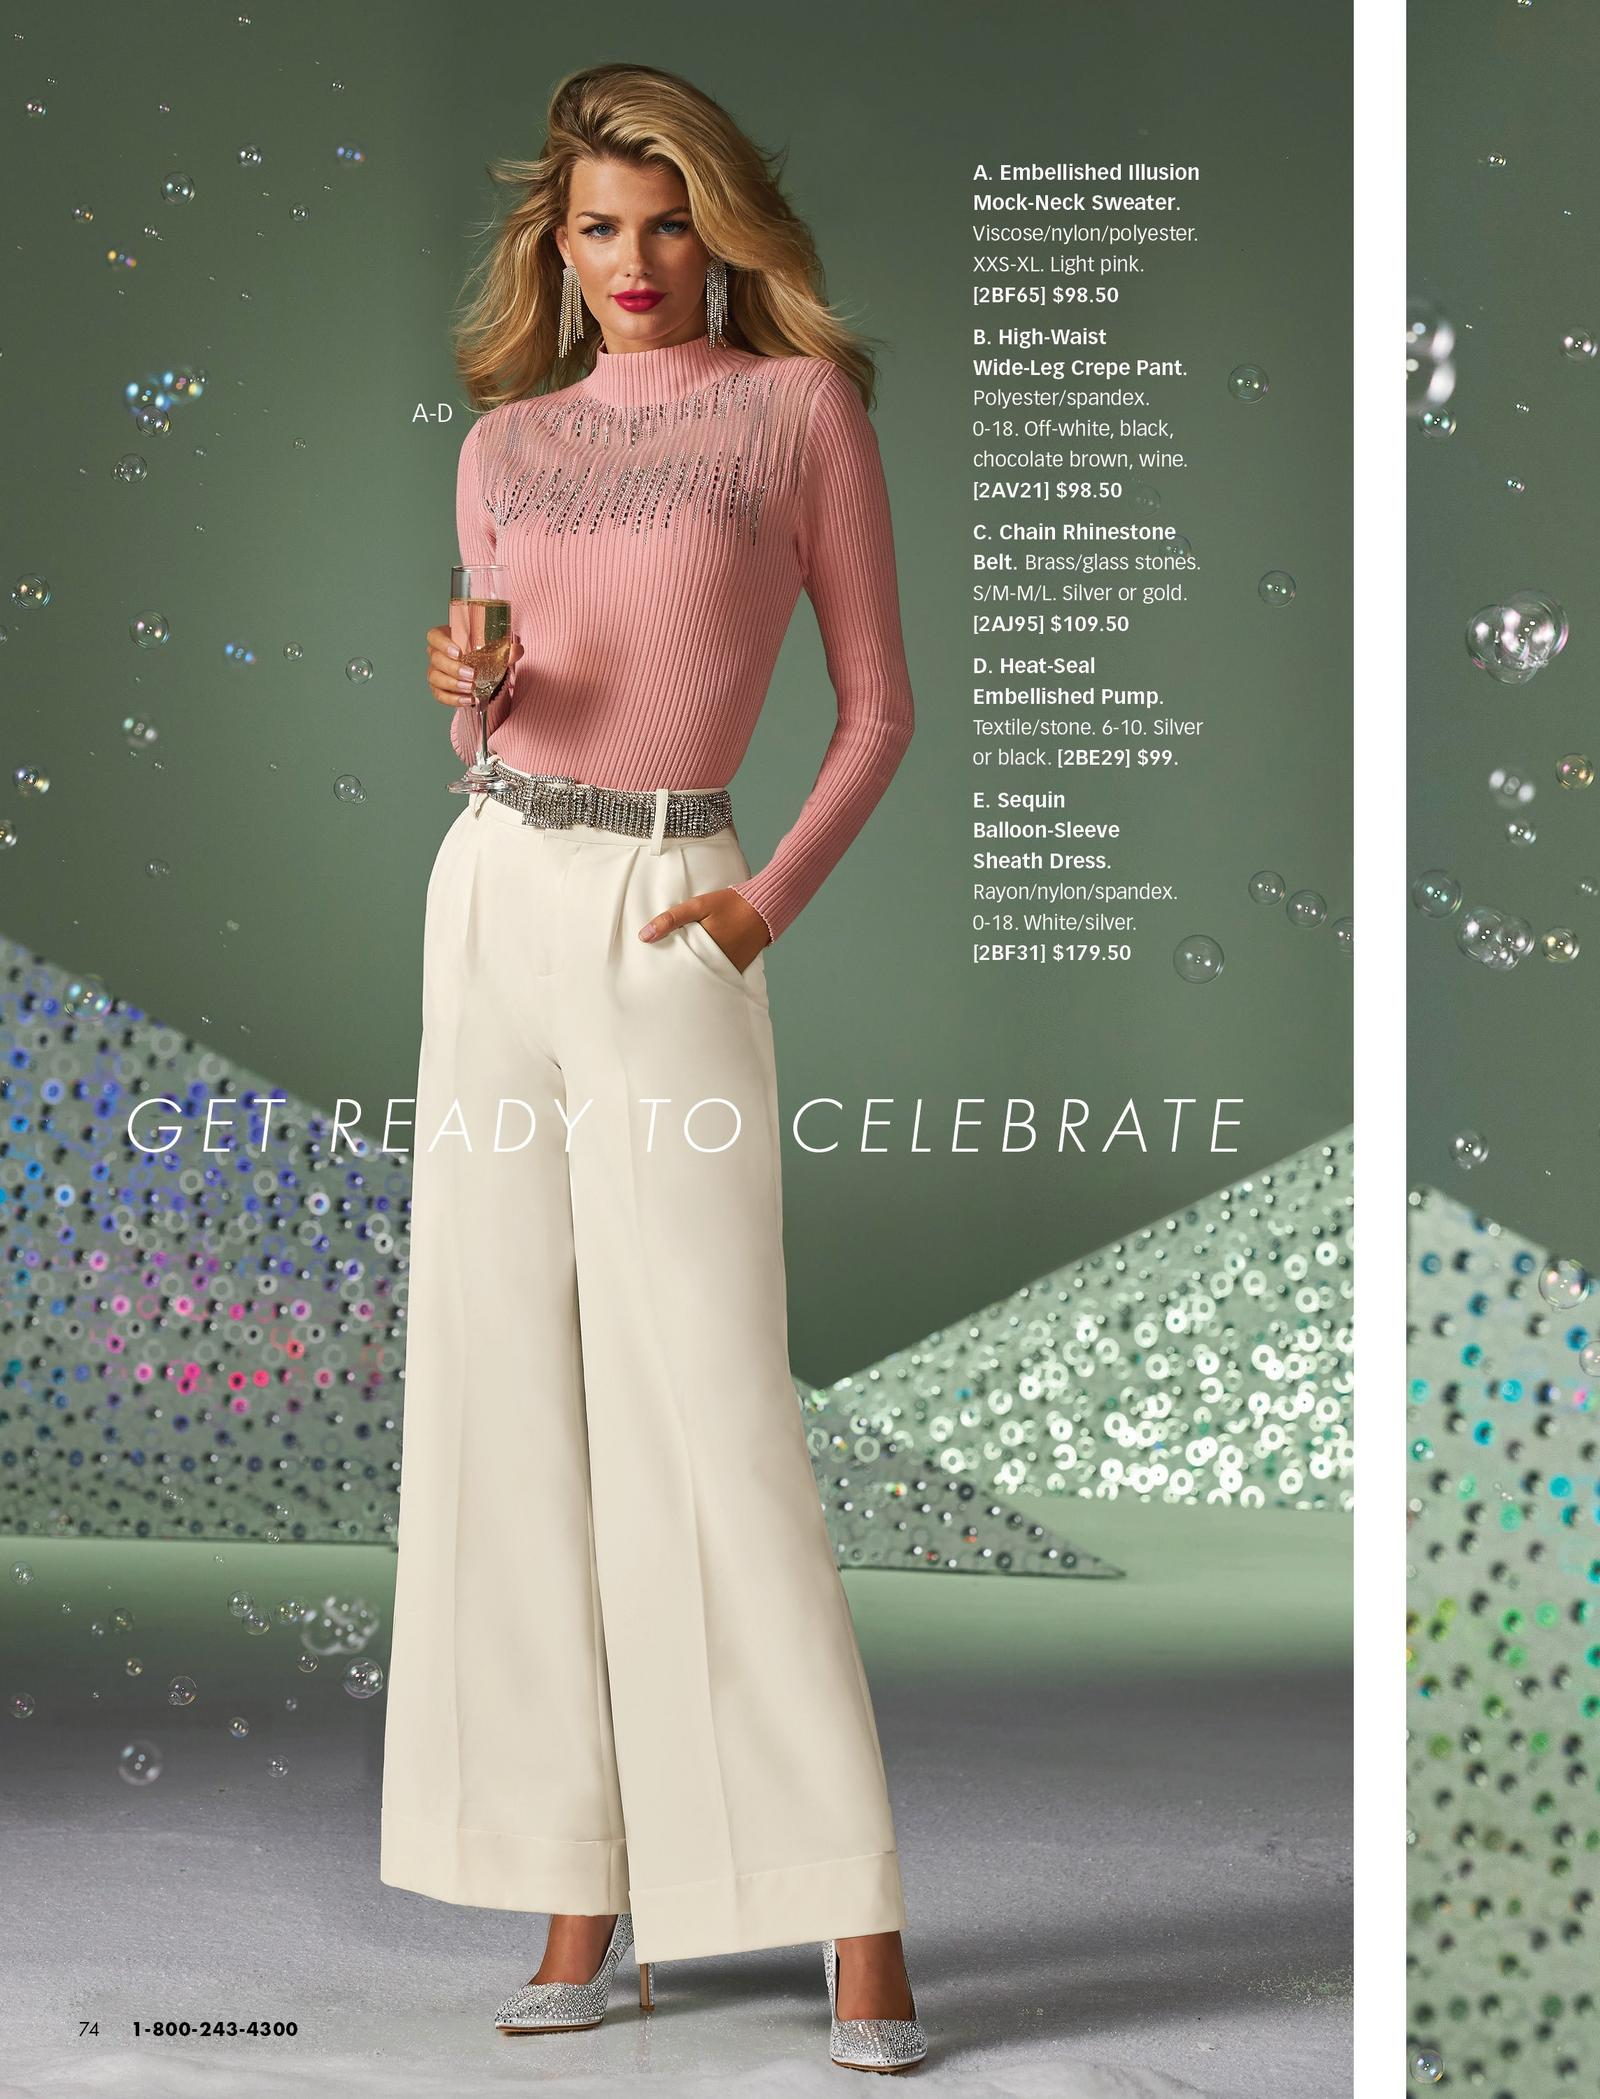 model wearing a pink embellished illusion mock-neck sweater, white wide-leg crepe pants, silver chain belt, and rhinestone embellished pumps.